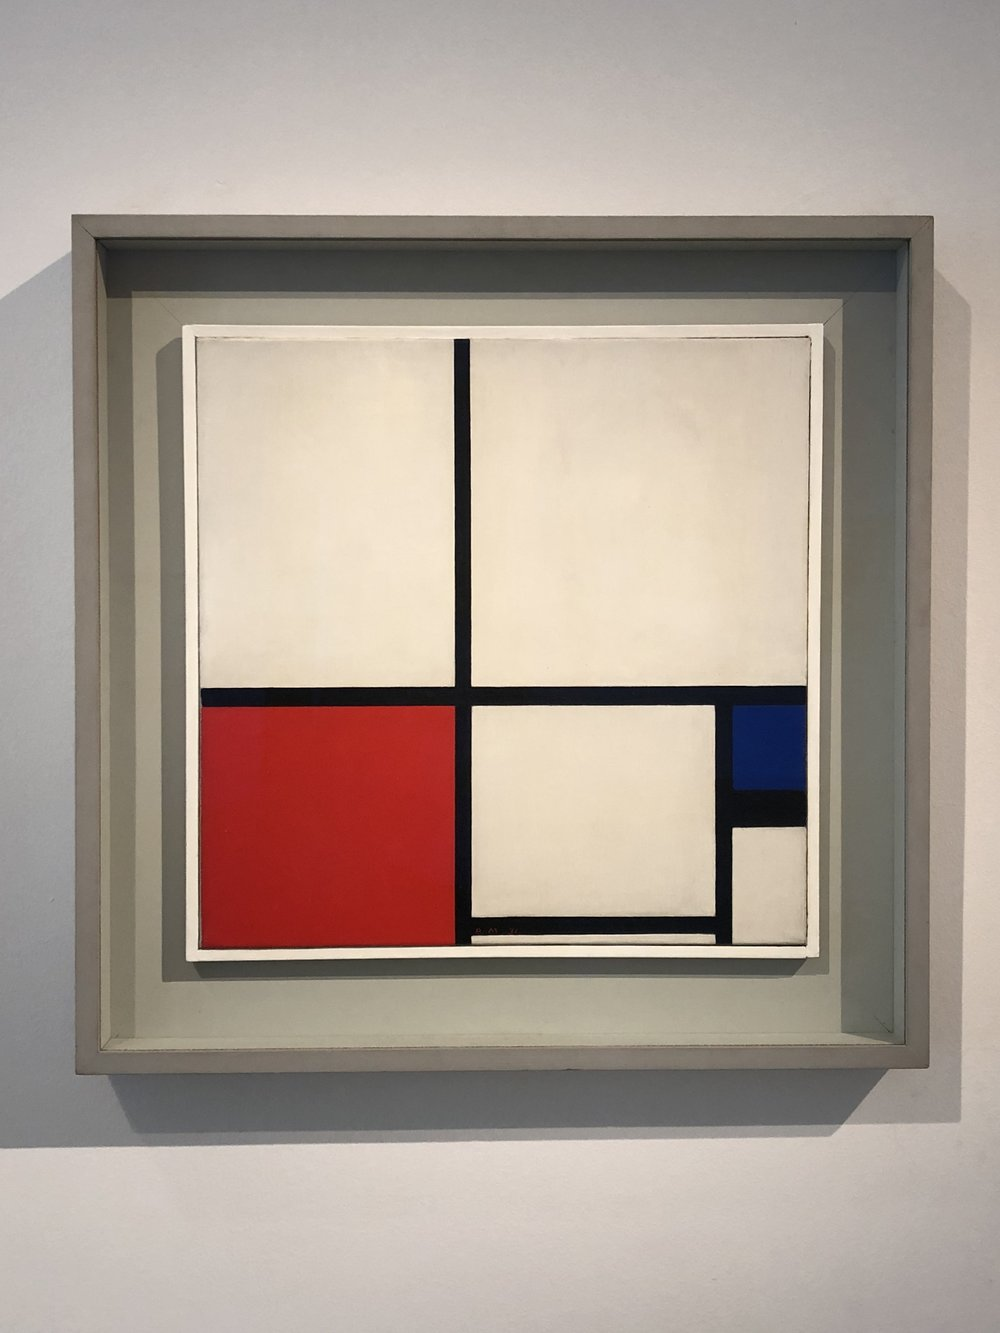 Piet Mondrian  Composition in Colours/ Composition No. 1 with Red and Blue, 1931